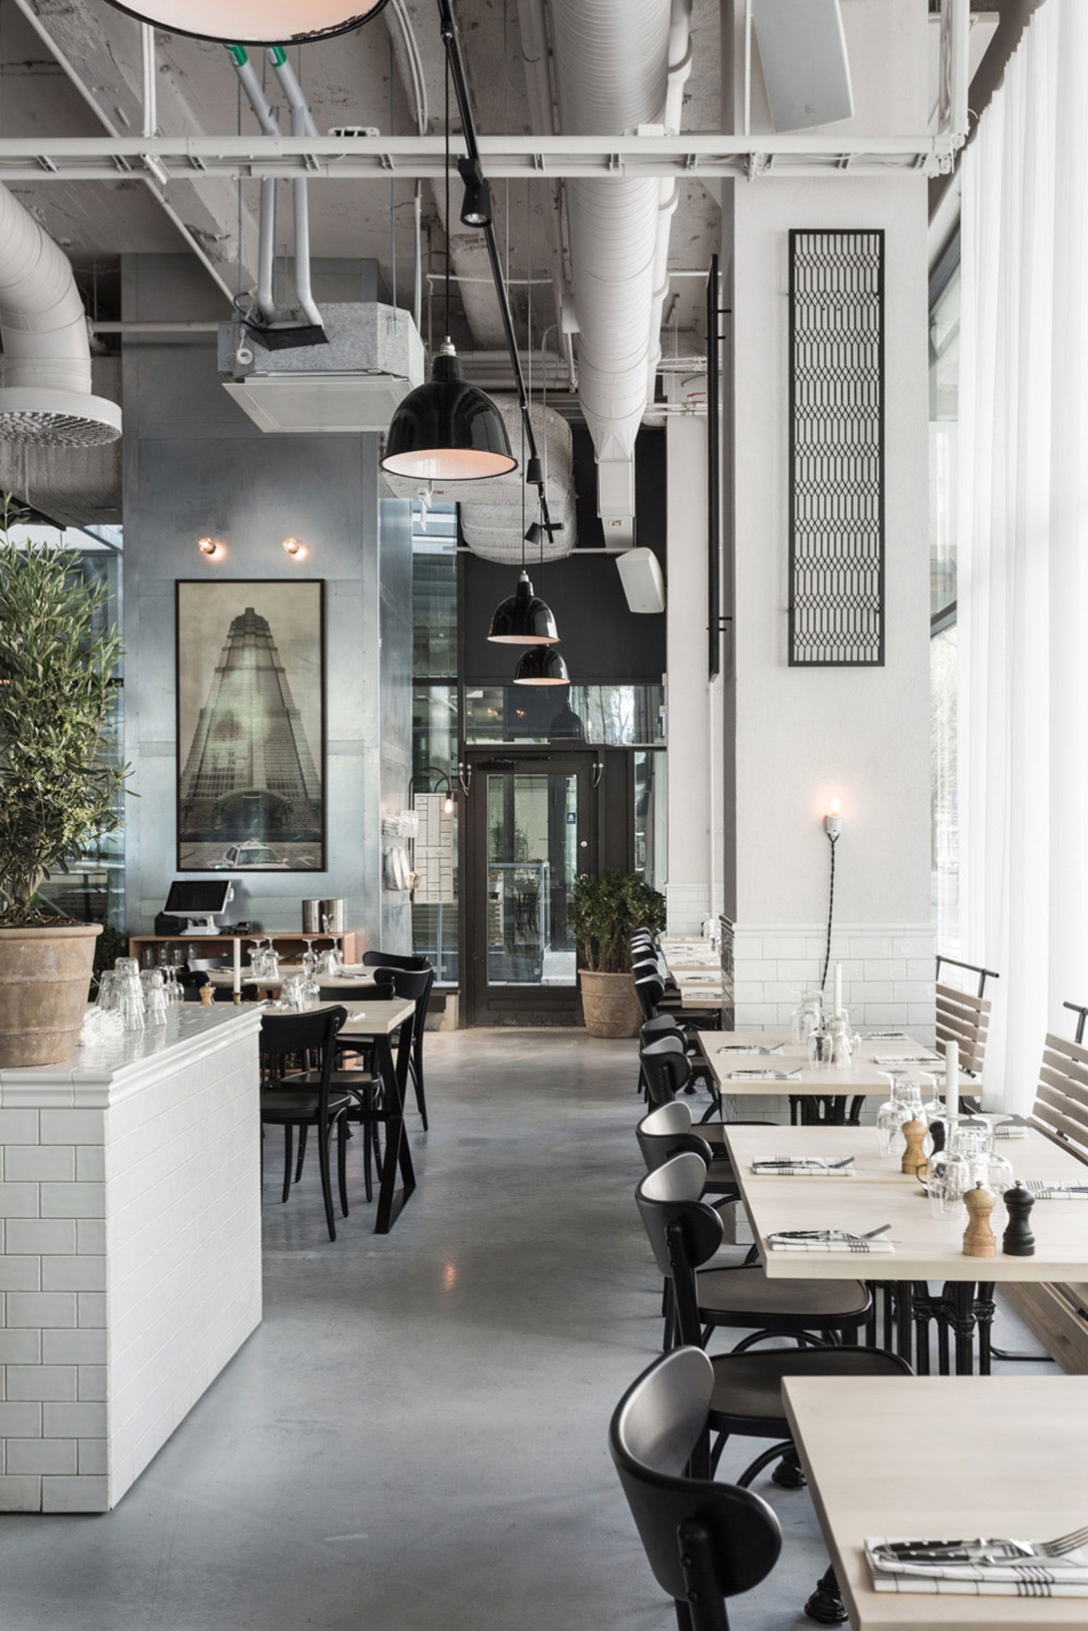 usine-restaurant-in-stockholm-by-richard-lindvall-yellowtrace-05